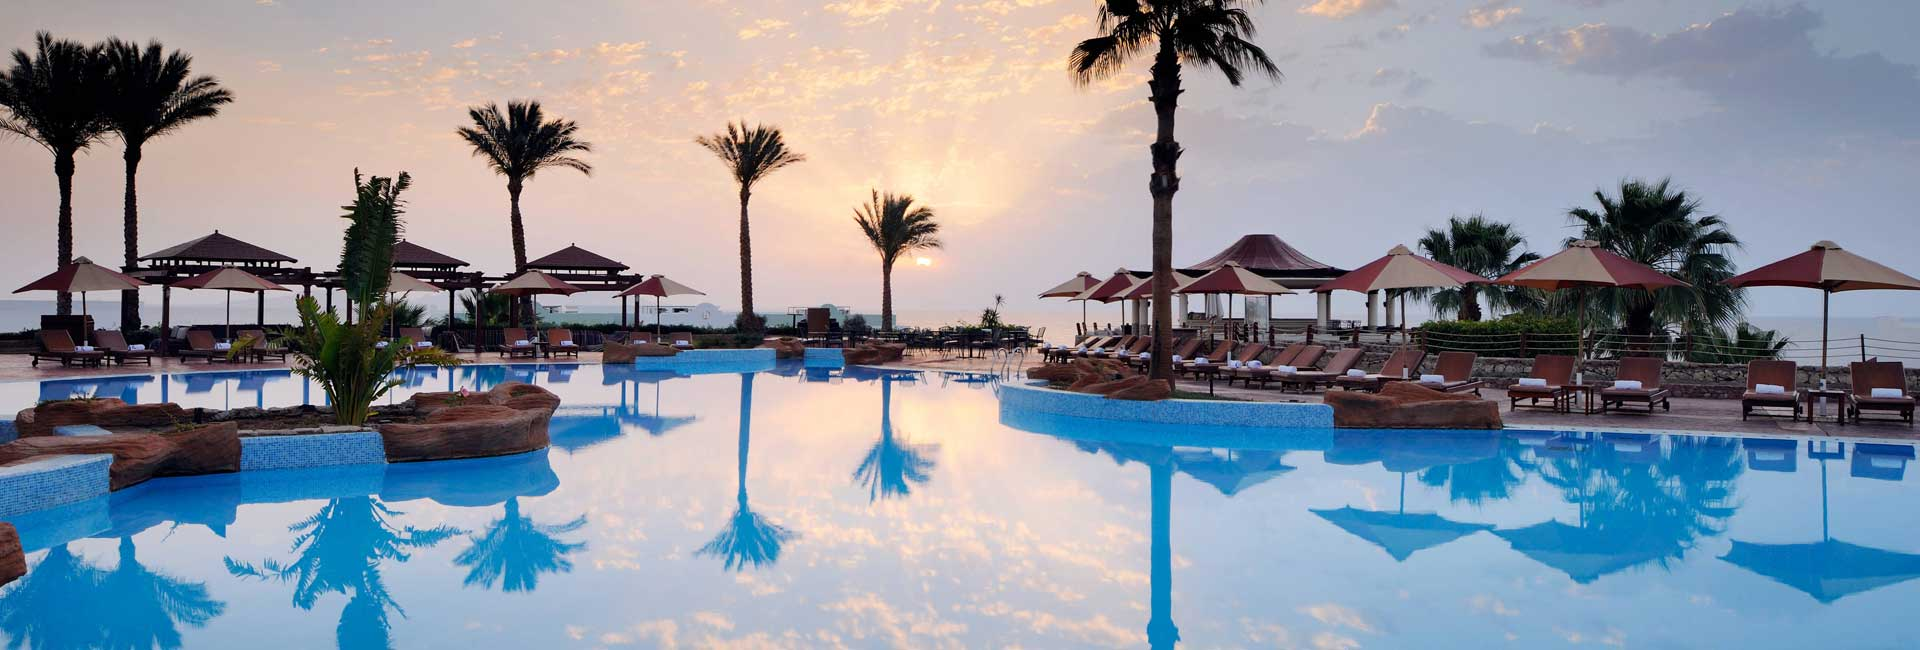 Sharm El Sheikh Top Attractions